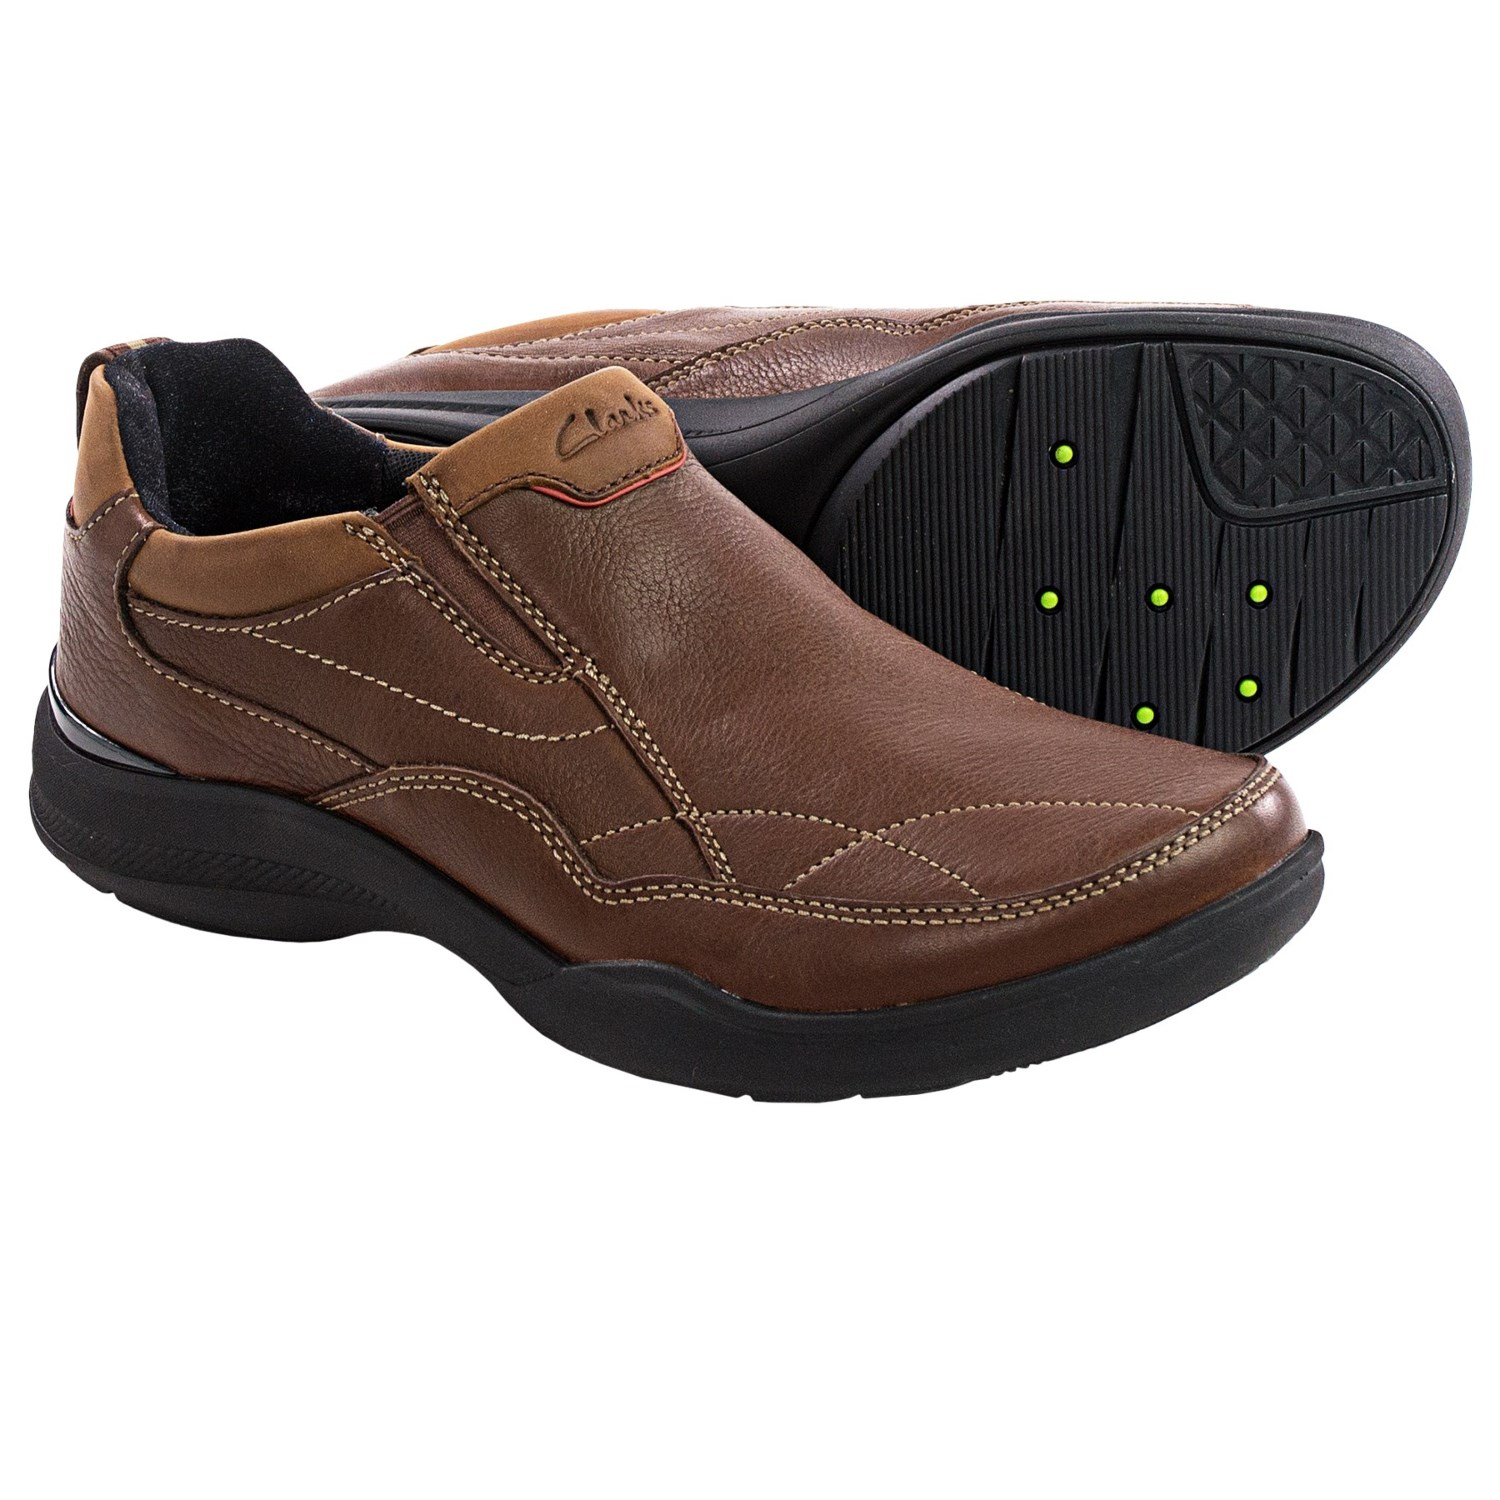 Clarks Buster Shoe